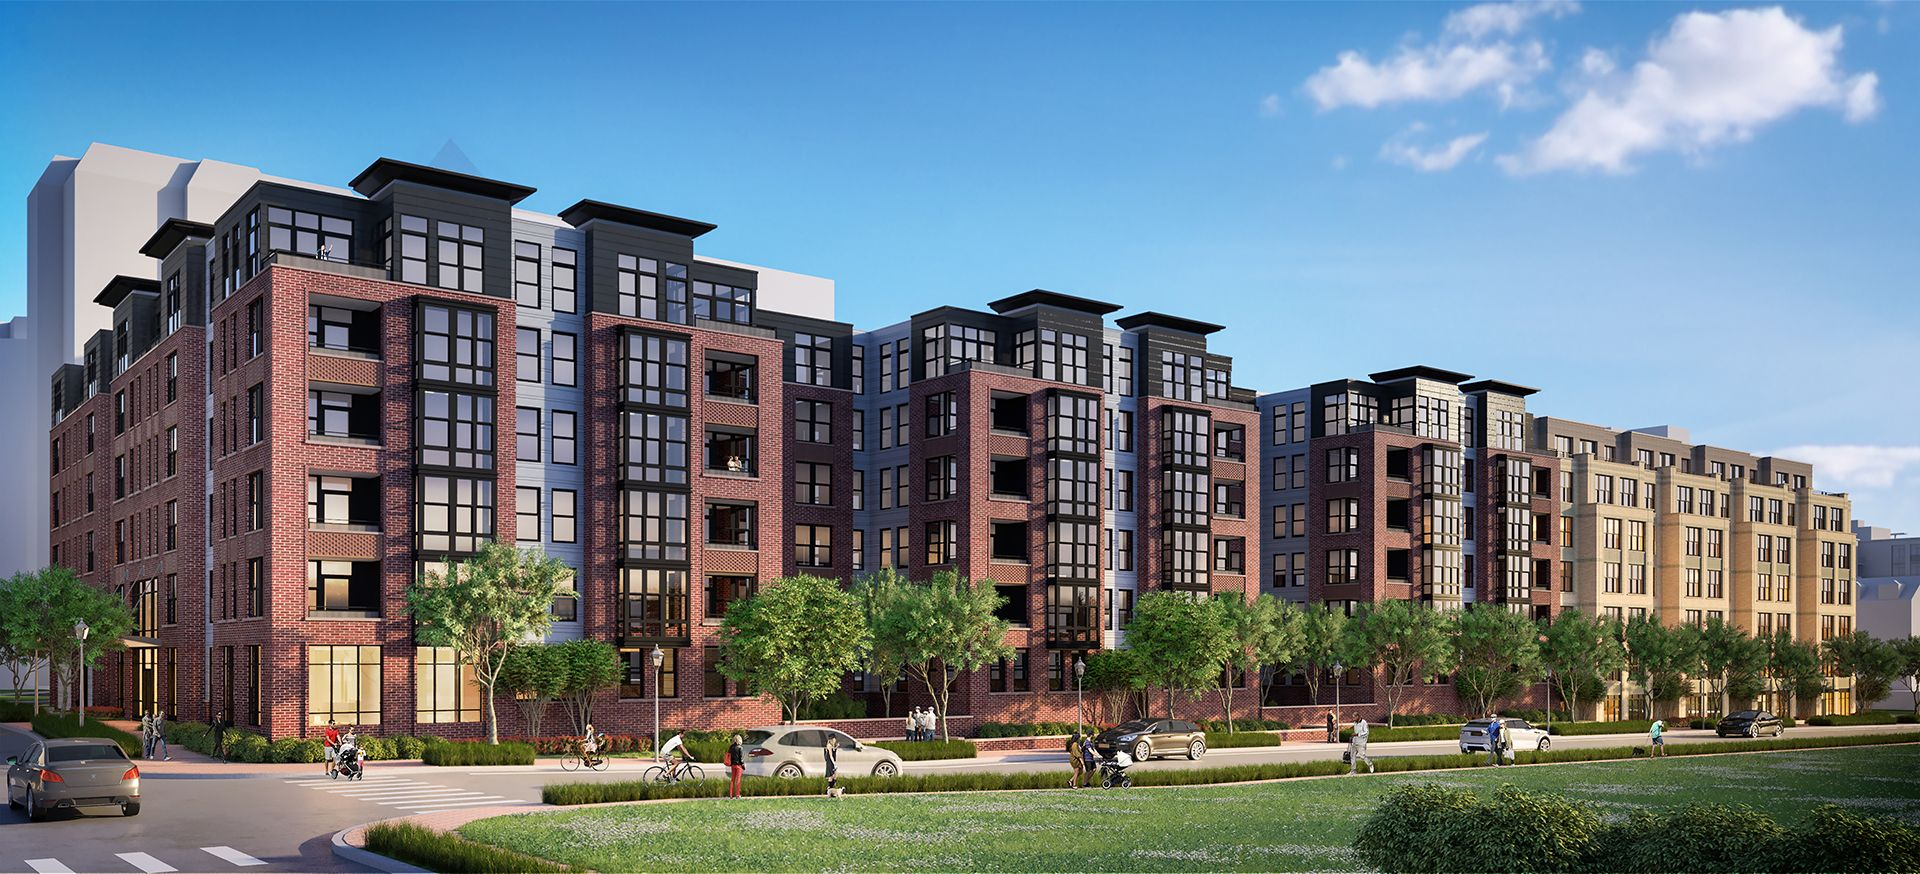 Rendering of exterior of apartment building